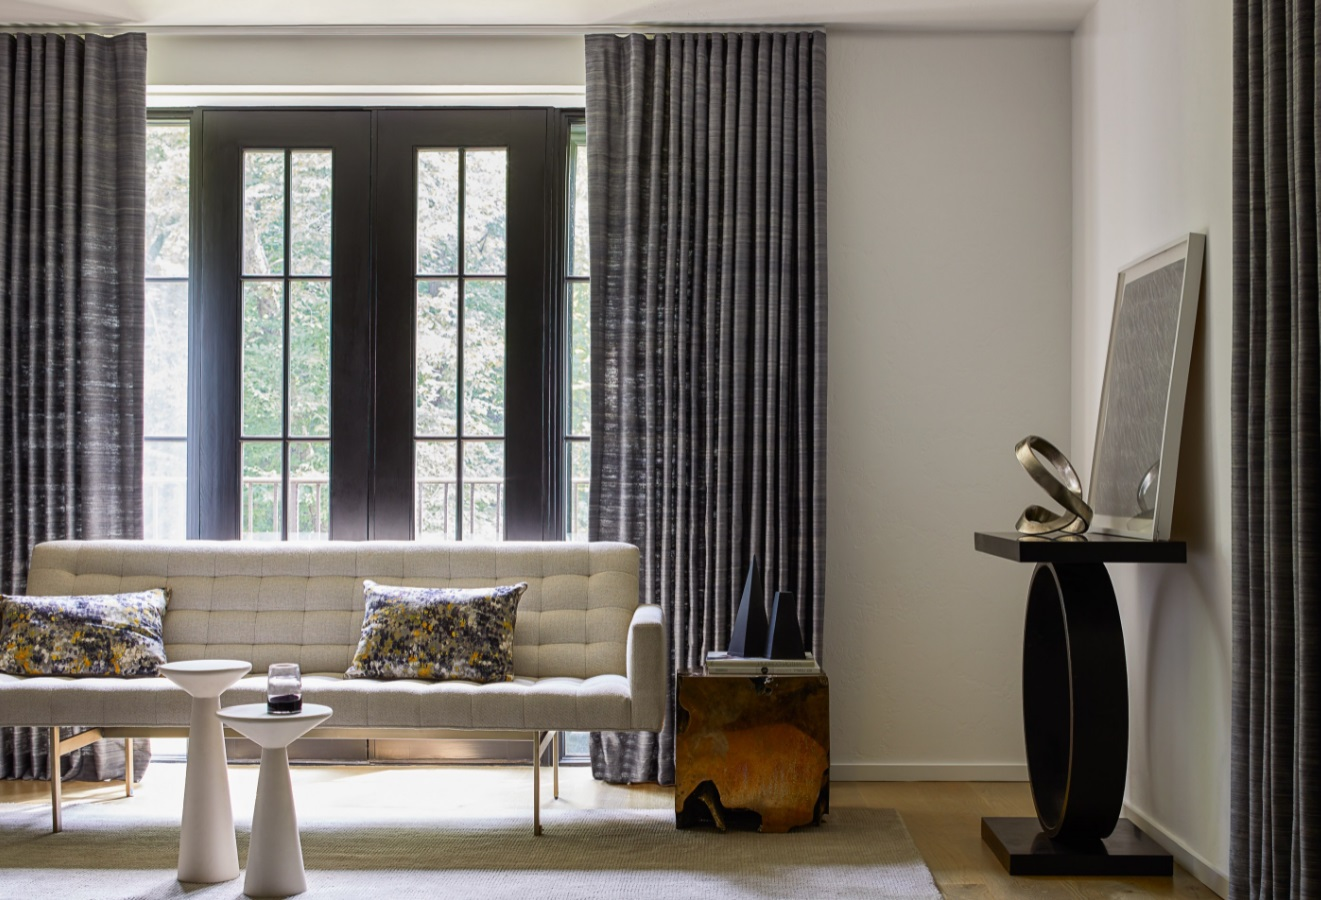 Help your curtain choice with these tips